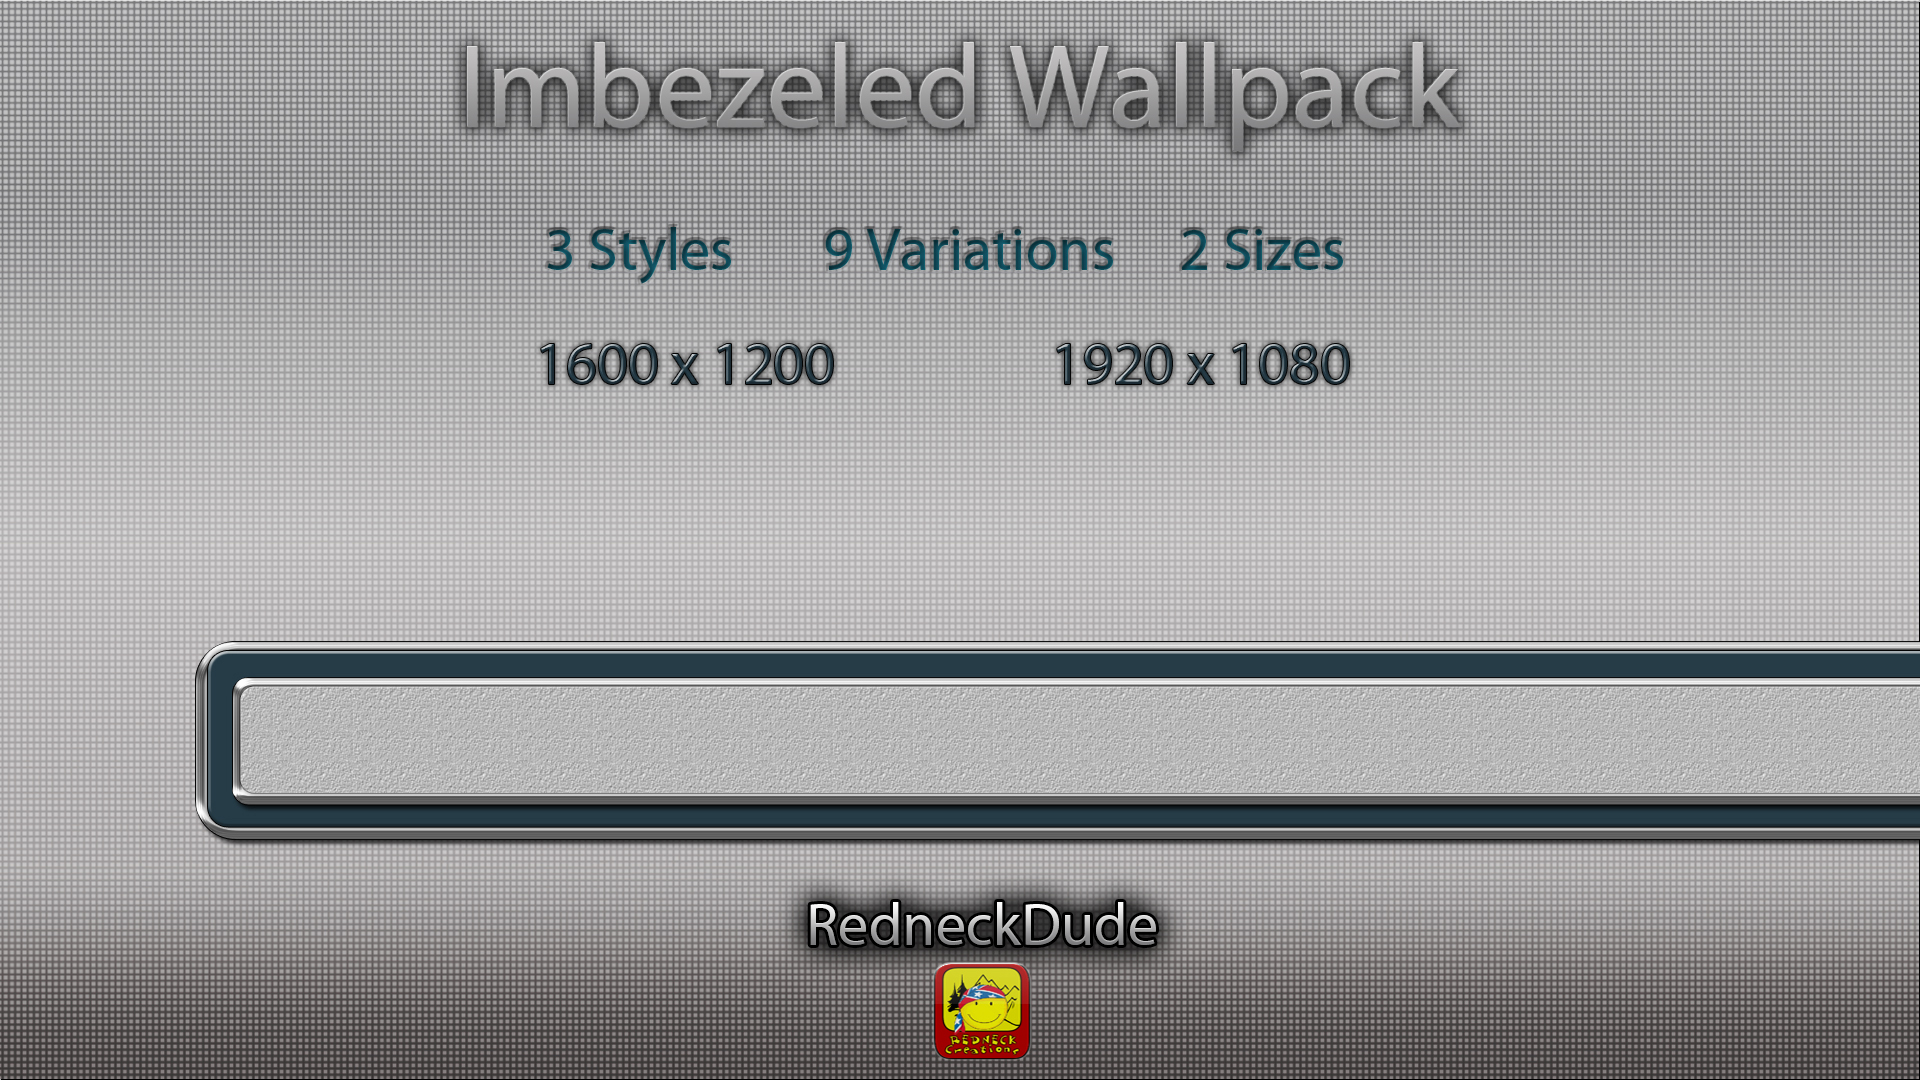 Imbezeled Wallpack